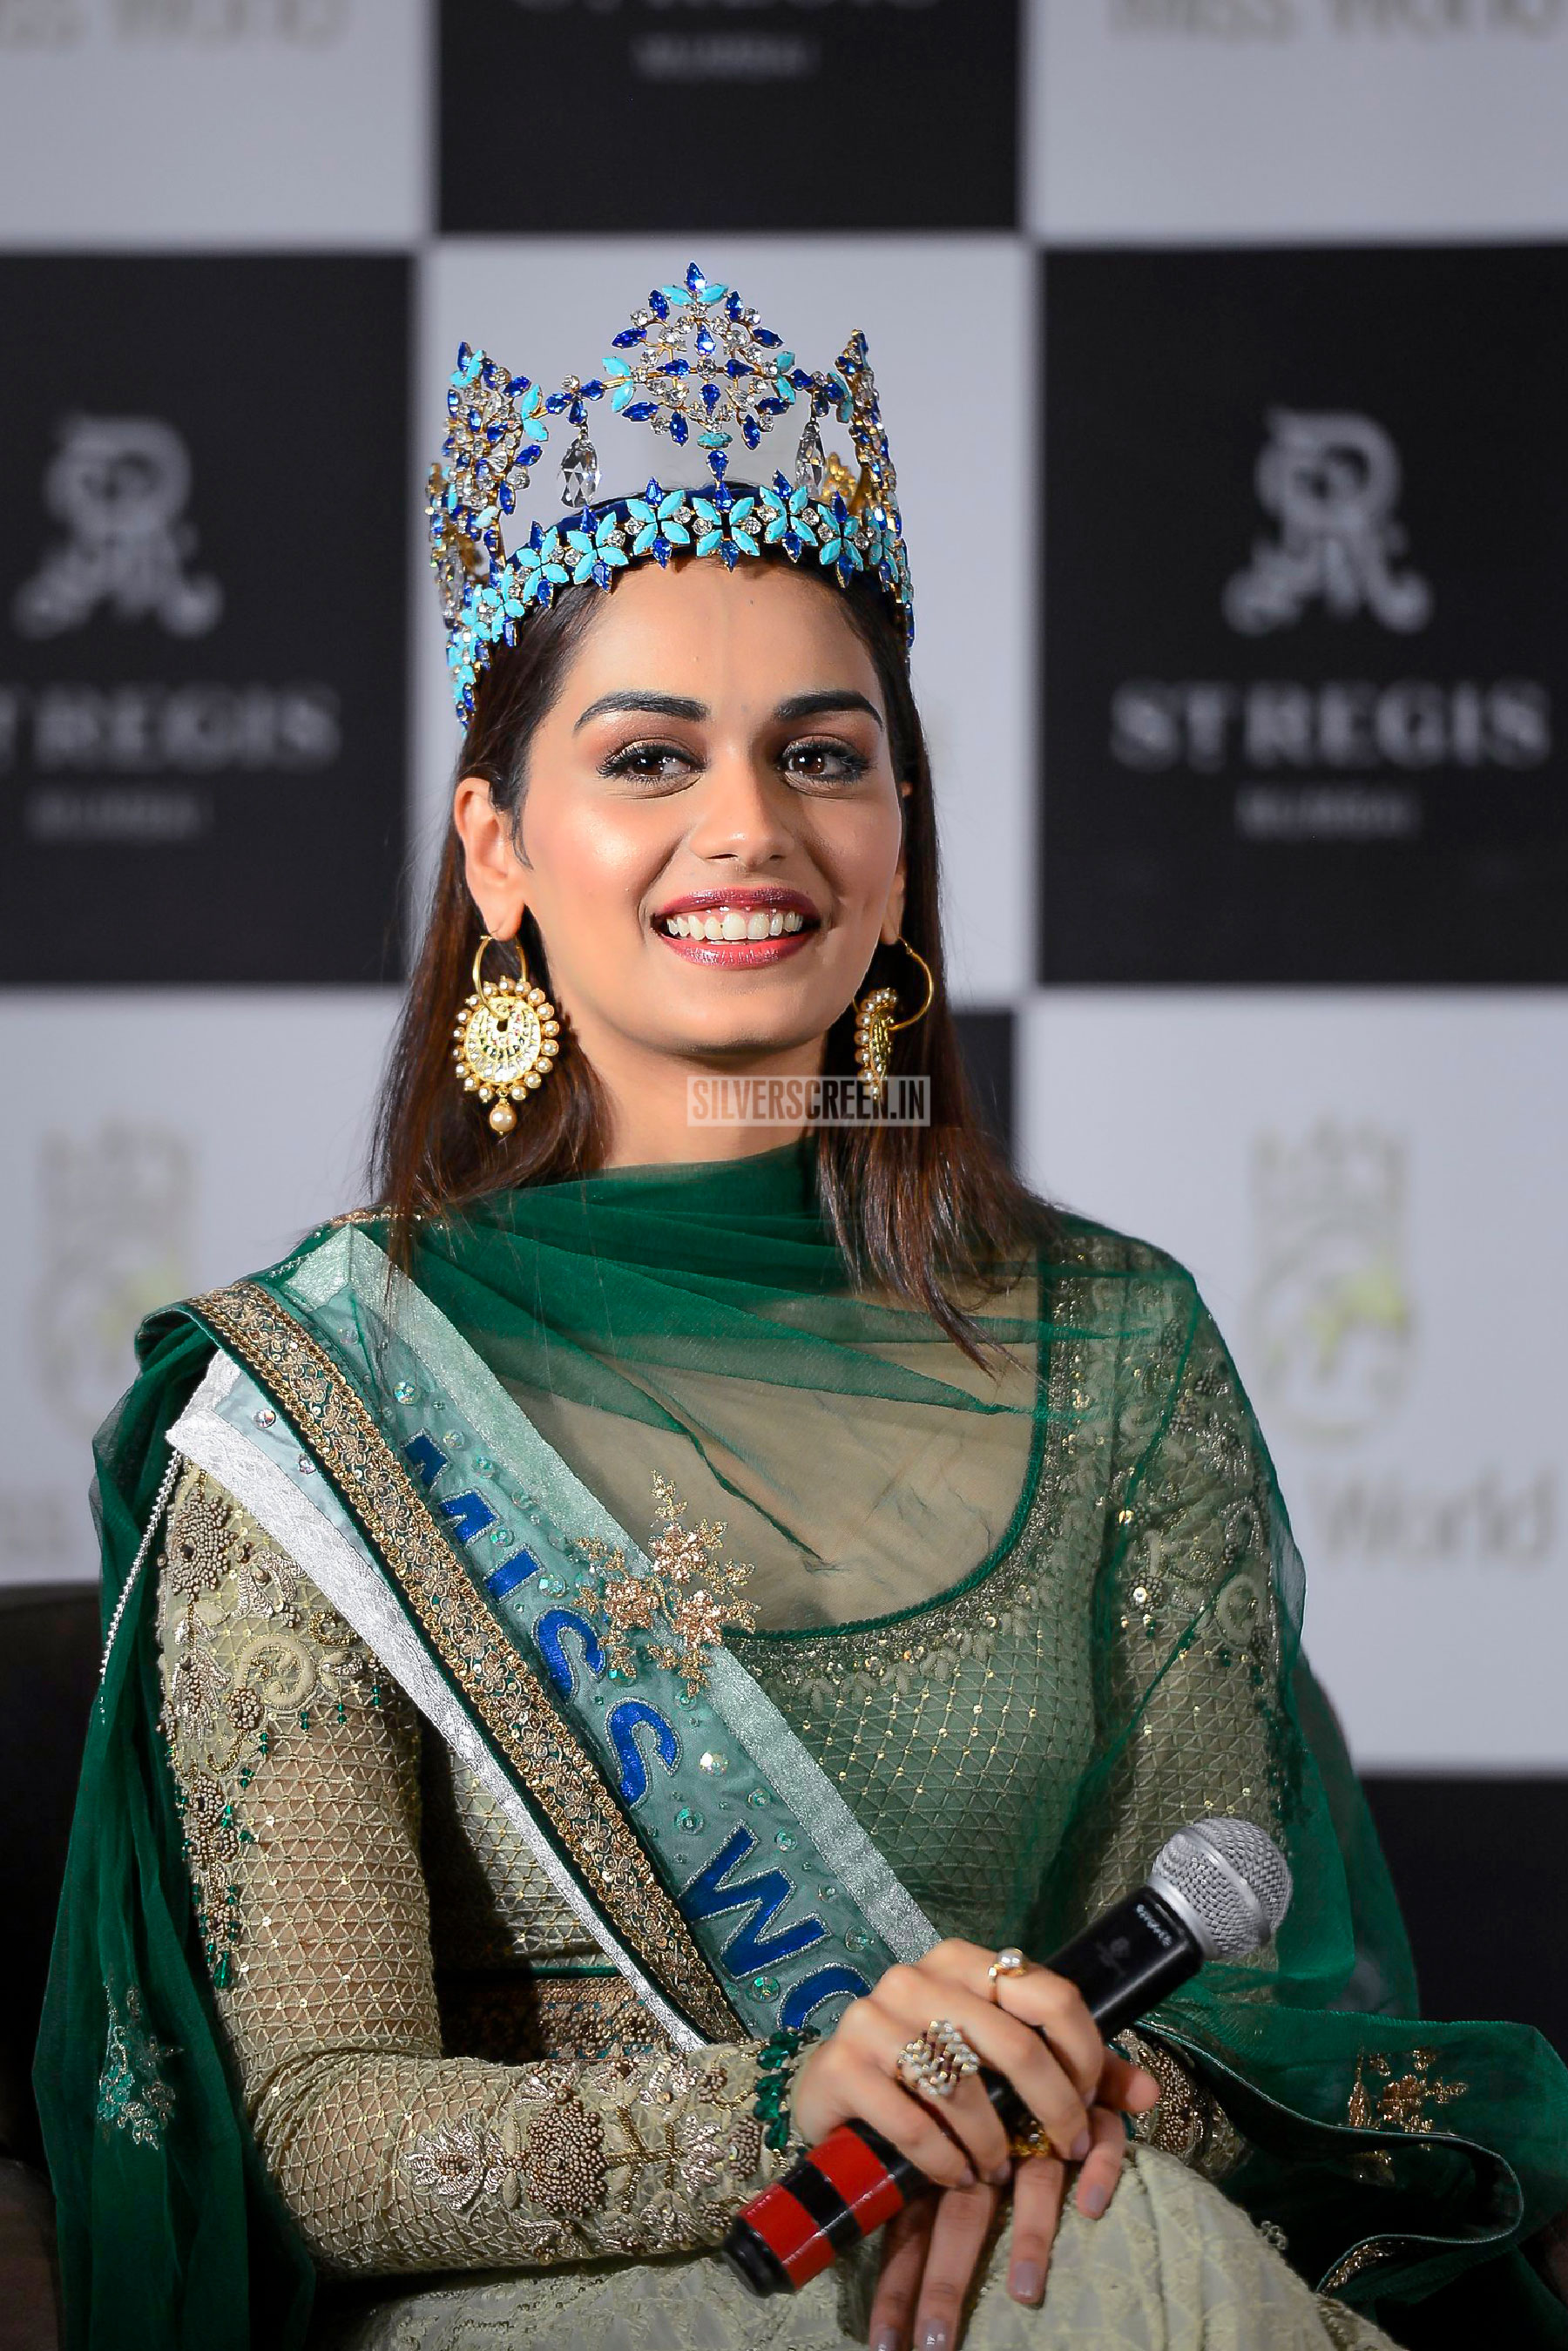 Privacy Policy >> Miss World Manushi Chhillar at a Press Conference | Silverscreen.in